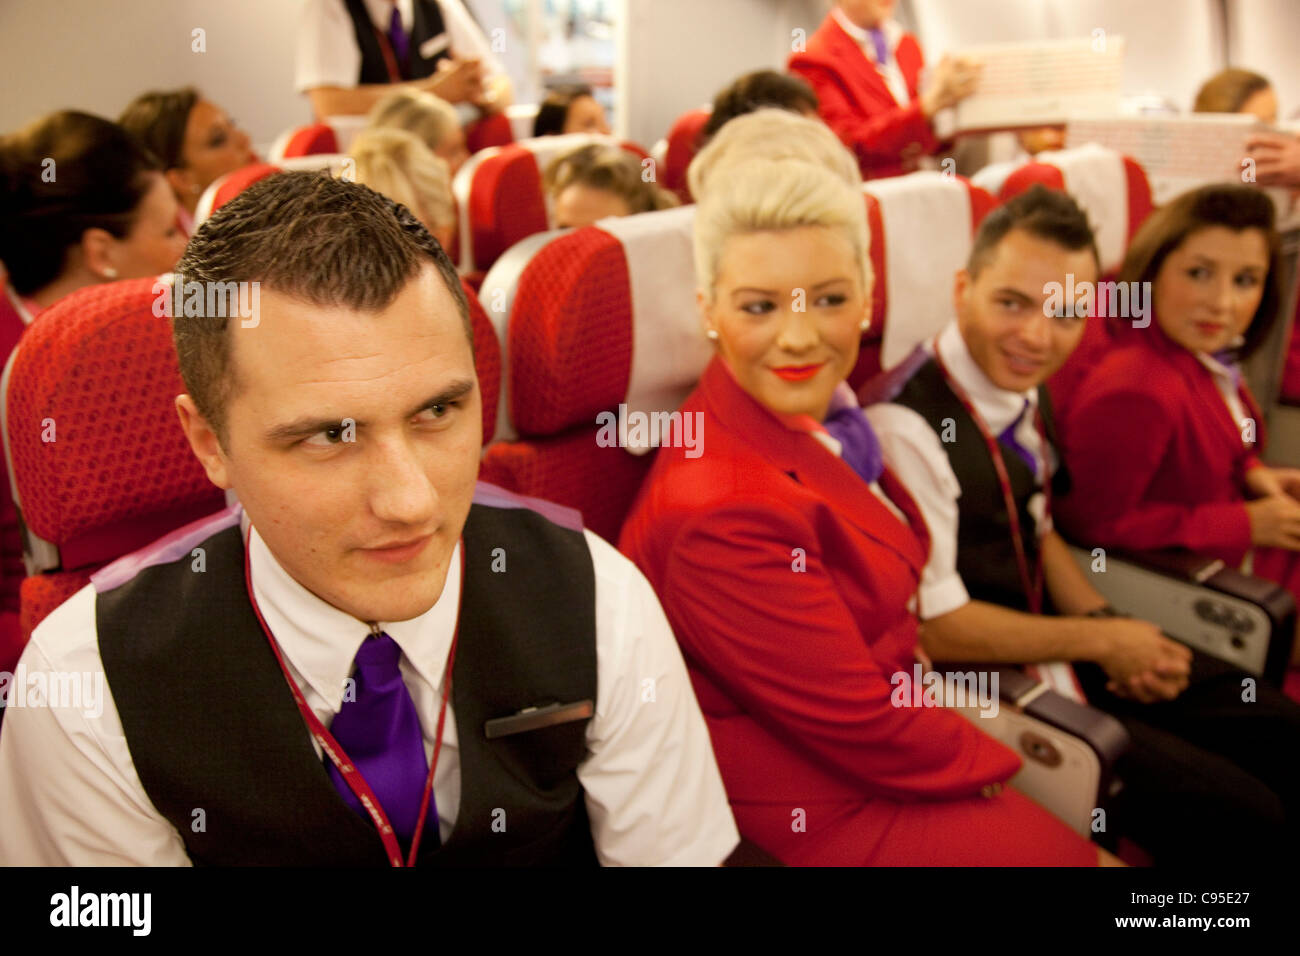 Cabin Crew Jobs at Virgin Atlantic